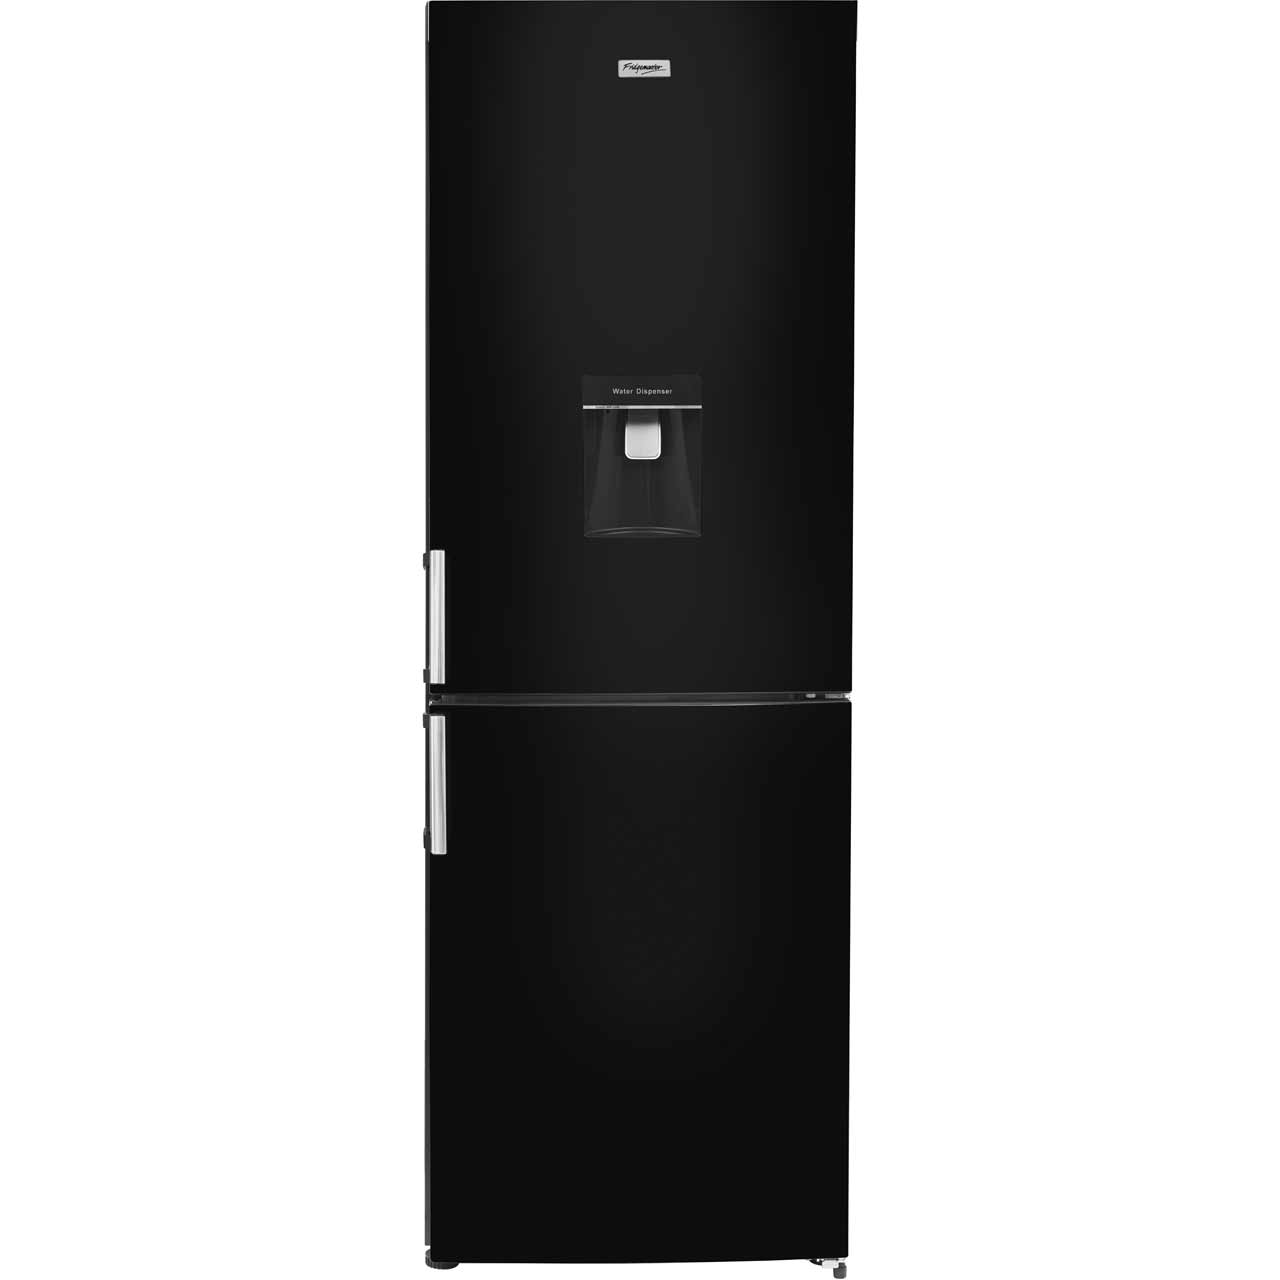 Fridgemaster MC60283DFFB Free Standing Fridge Freezer Frost Free in Black